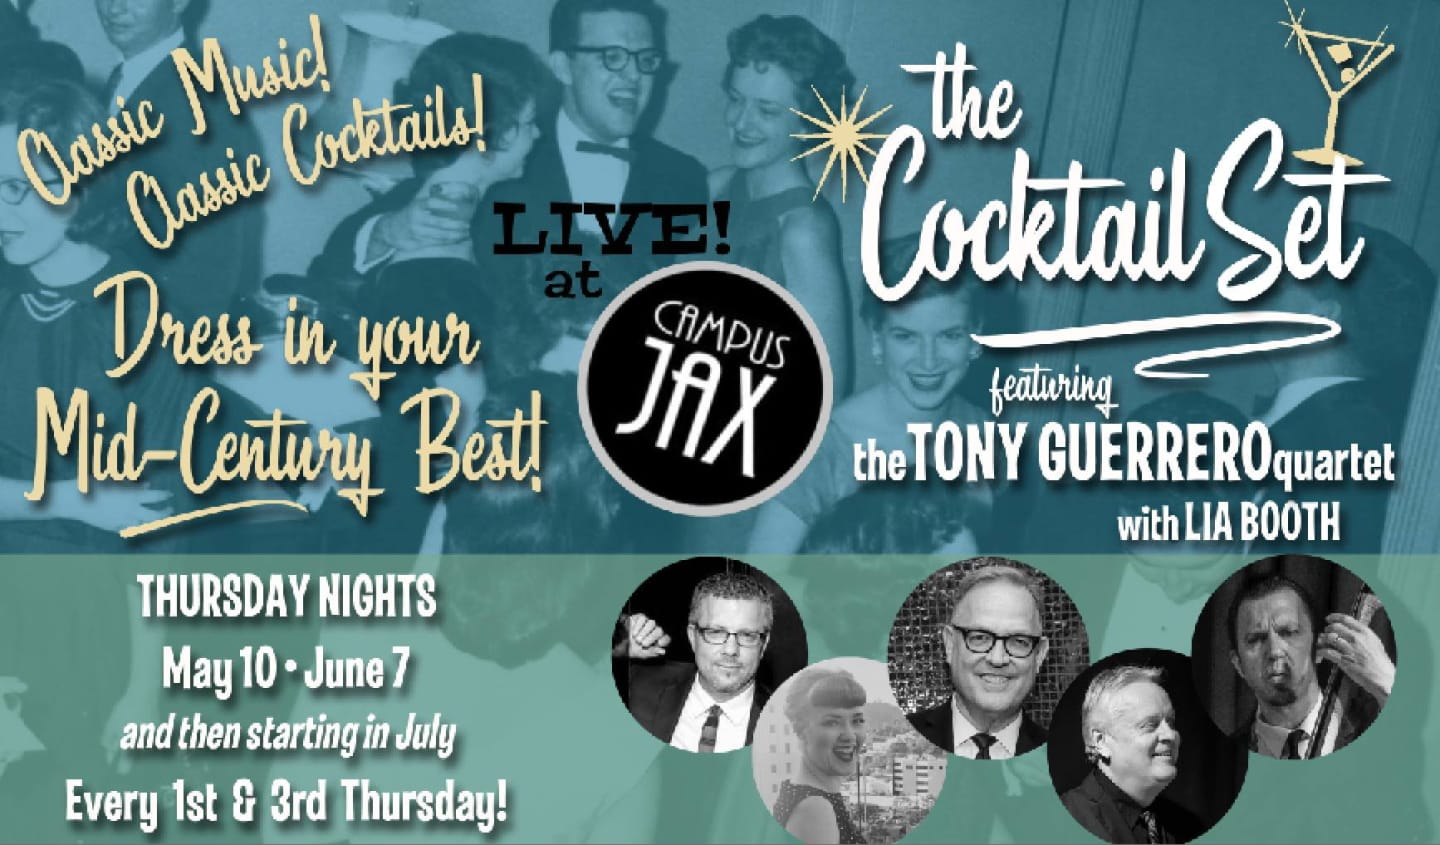 June 7   THE COCKTAIL SET with TONY GUERRERO